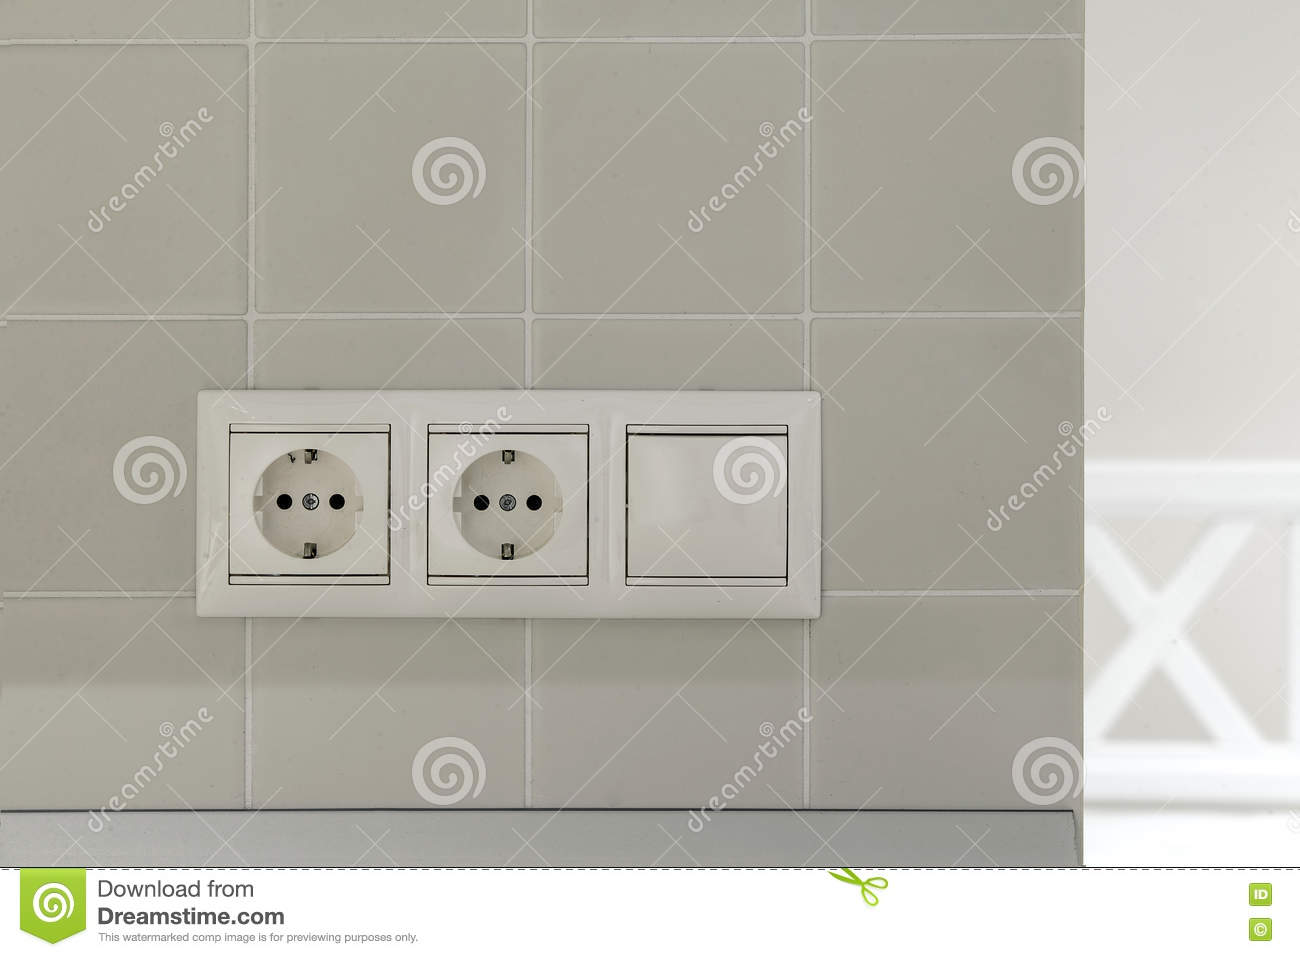 Two Electric Sockets And Switches Stock Photo - Image of push ...